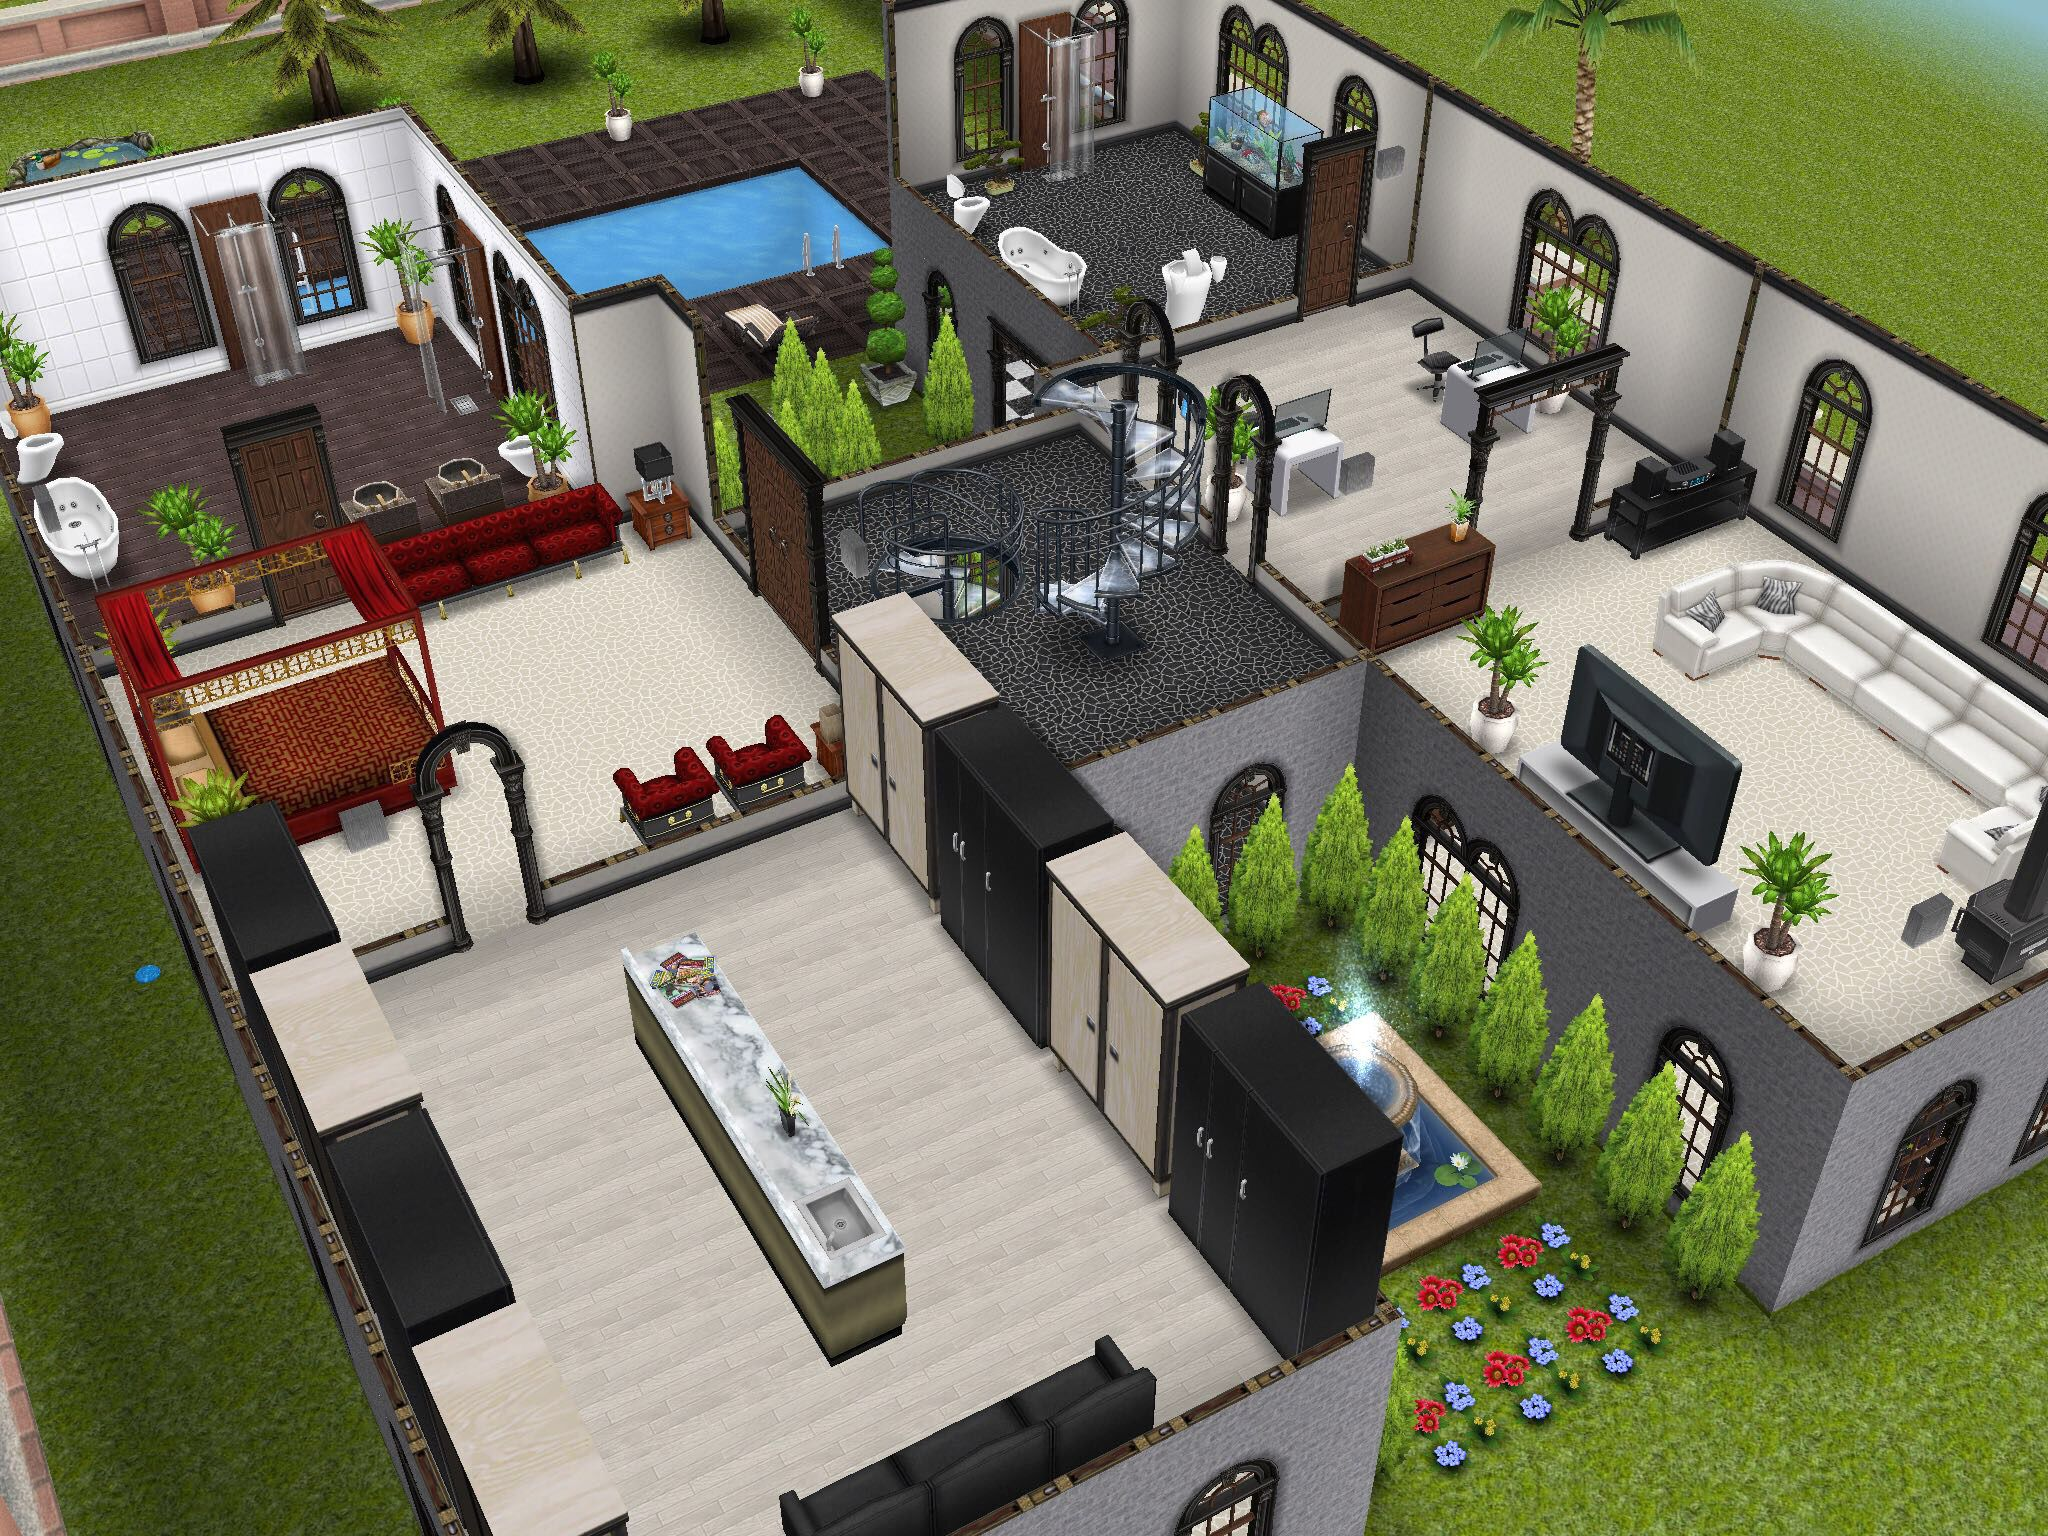 How to make a second floor on sims freeplay thefloorsco for How to make a second floor on sims freeplay